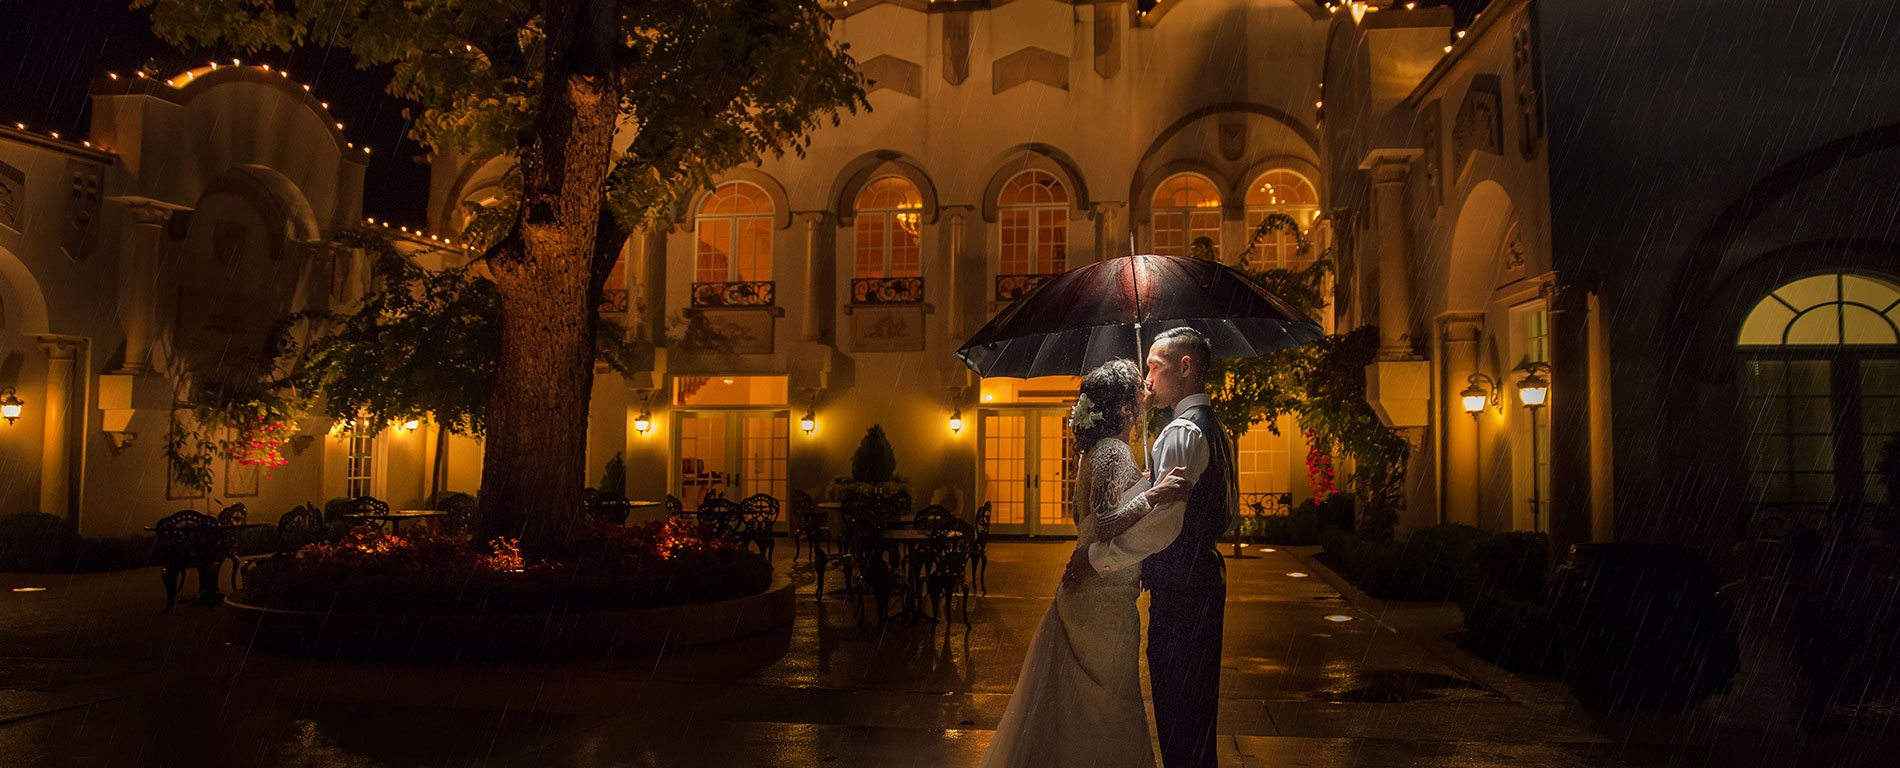 morais-vinyards-and-winery-home-slider-outside-parasol-kissing-rain Home